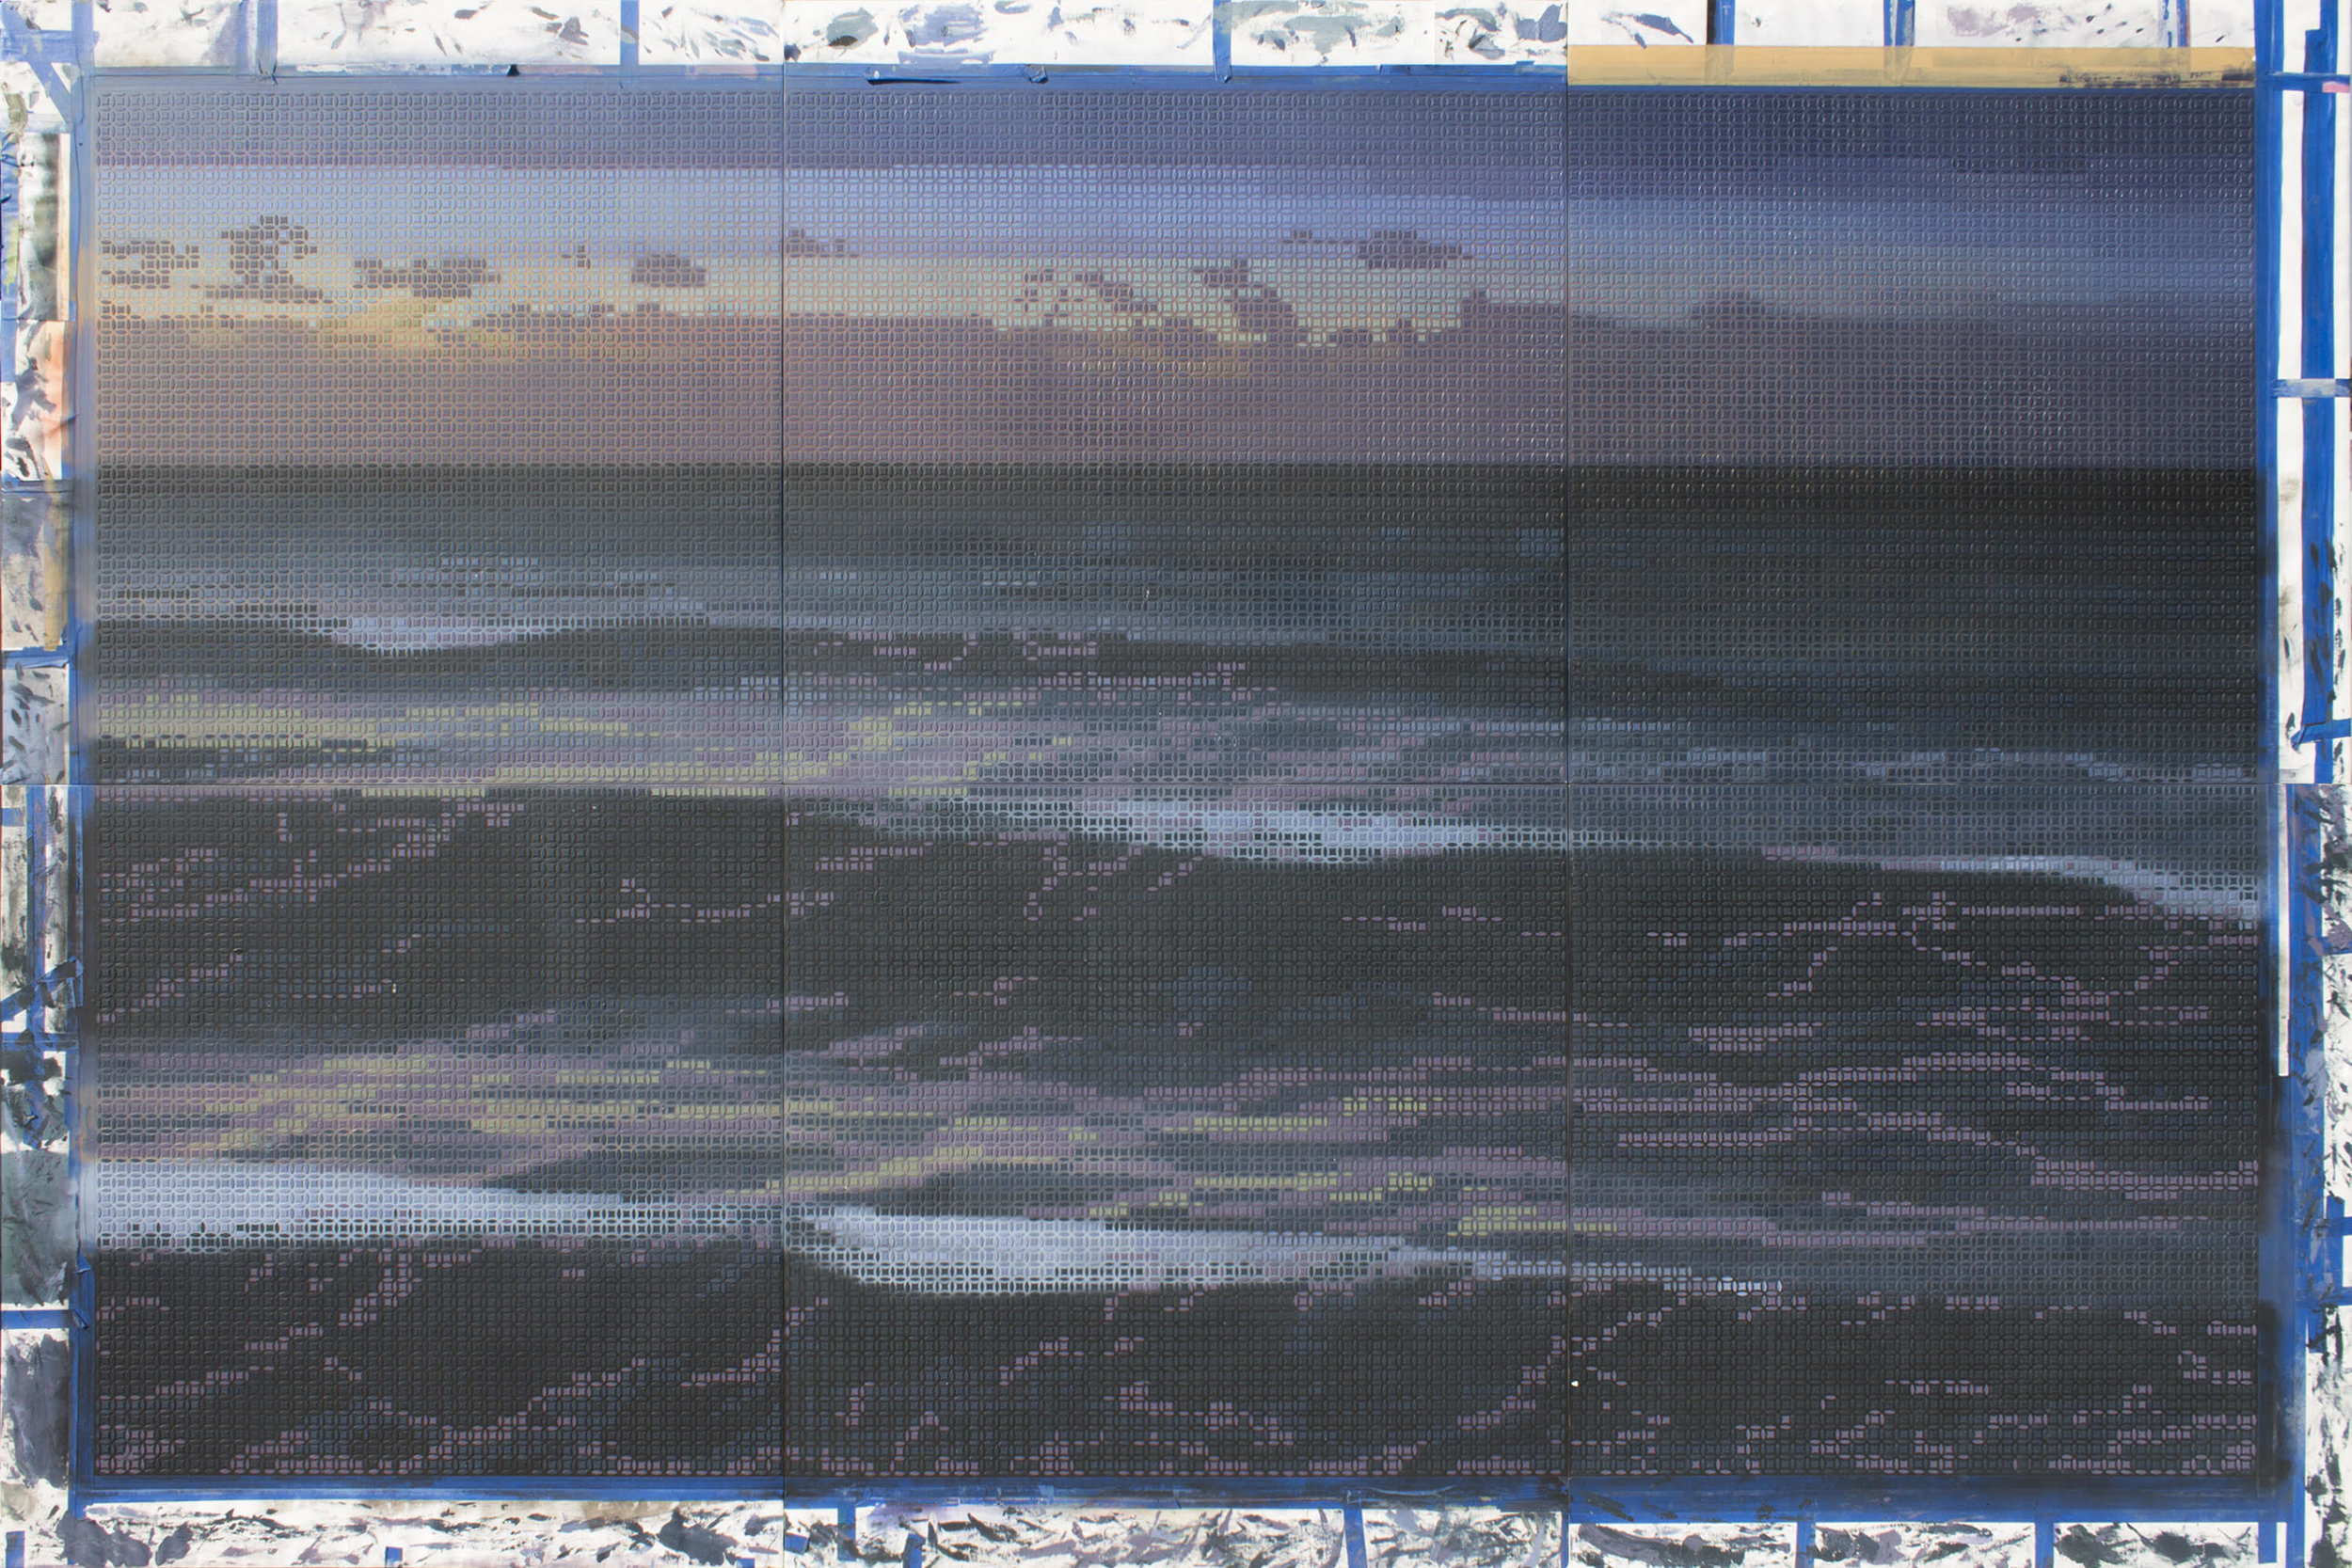 Roger Toledo Bueno,  Al Anochecer  ( At Dusk ), 2018, Acrylic on canvas, 78 3/4 x 118 inches (200 x 300 cm); Comprised by six panels of 39 3/8 x 39 3/8 inches (100 x 100 cm). [Placeholder photograph]